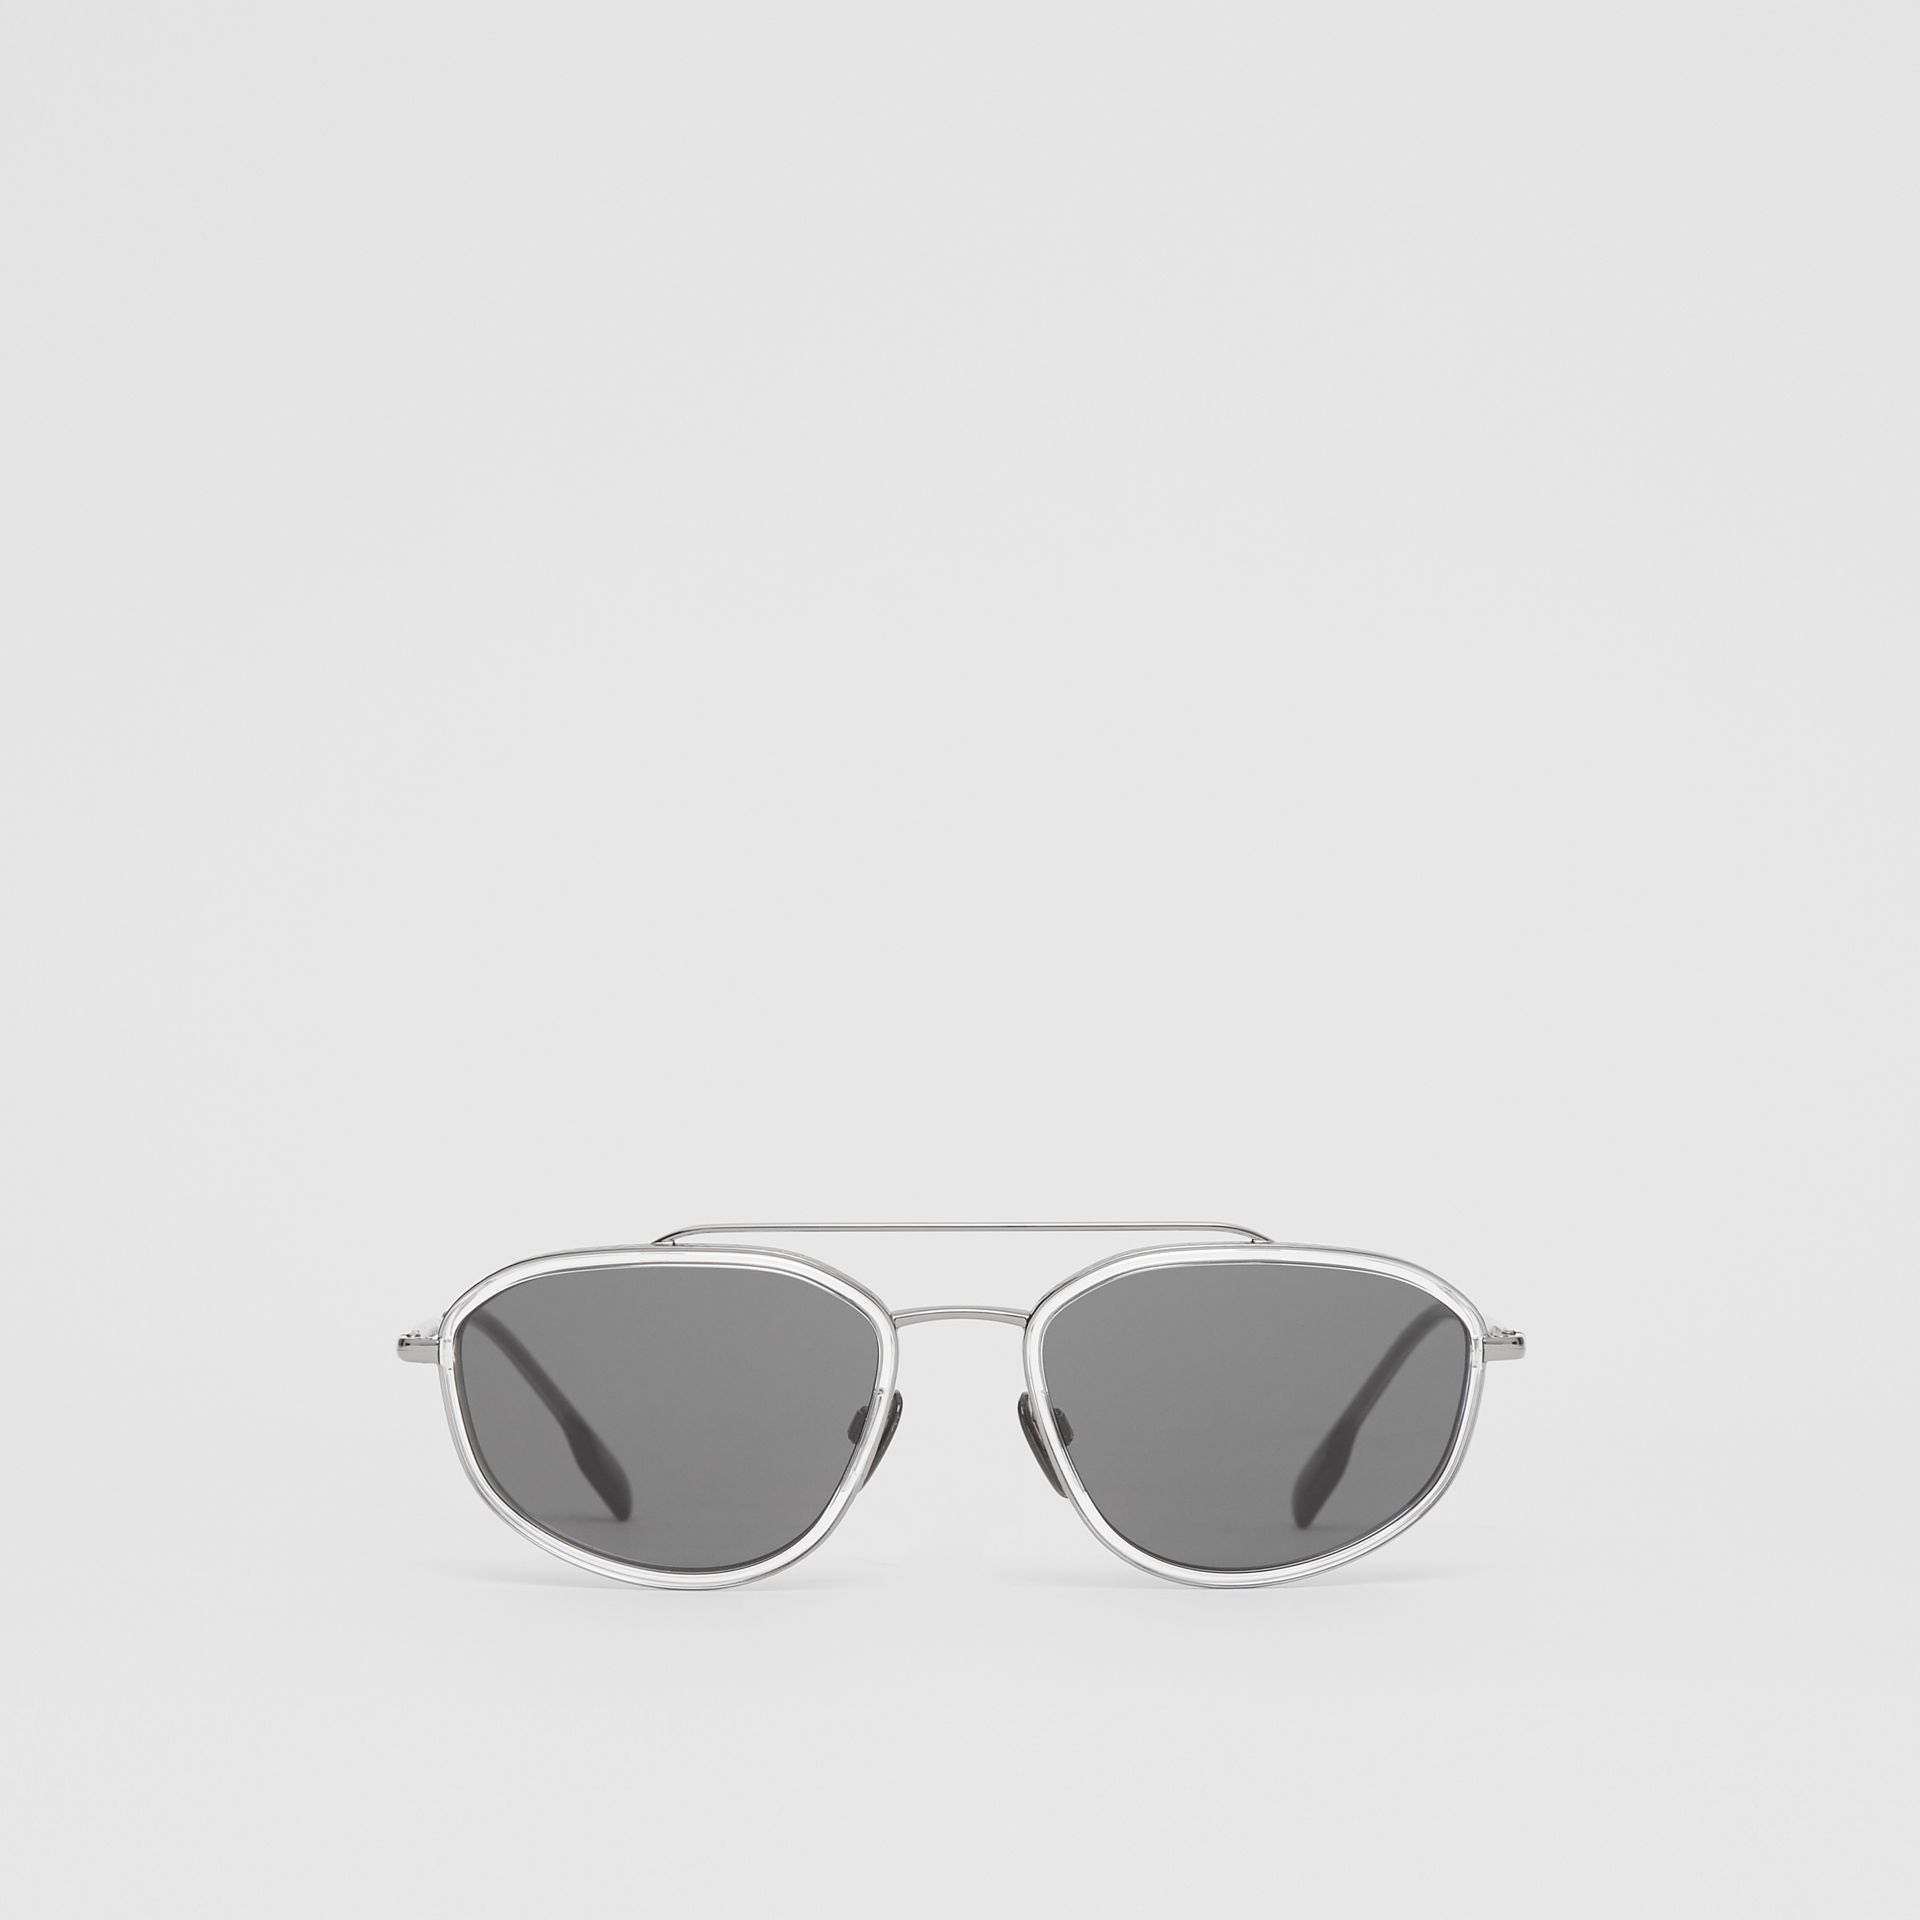 Geometric Navigator Sunglasses in Gunmetal Grey - Men | Burberry Hong Kong - gallery image 0